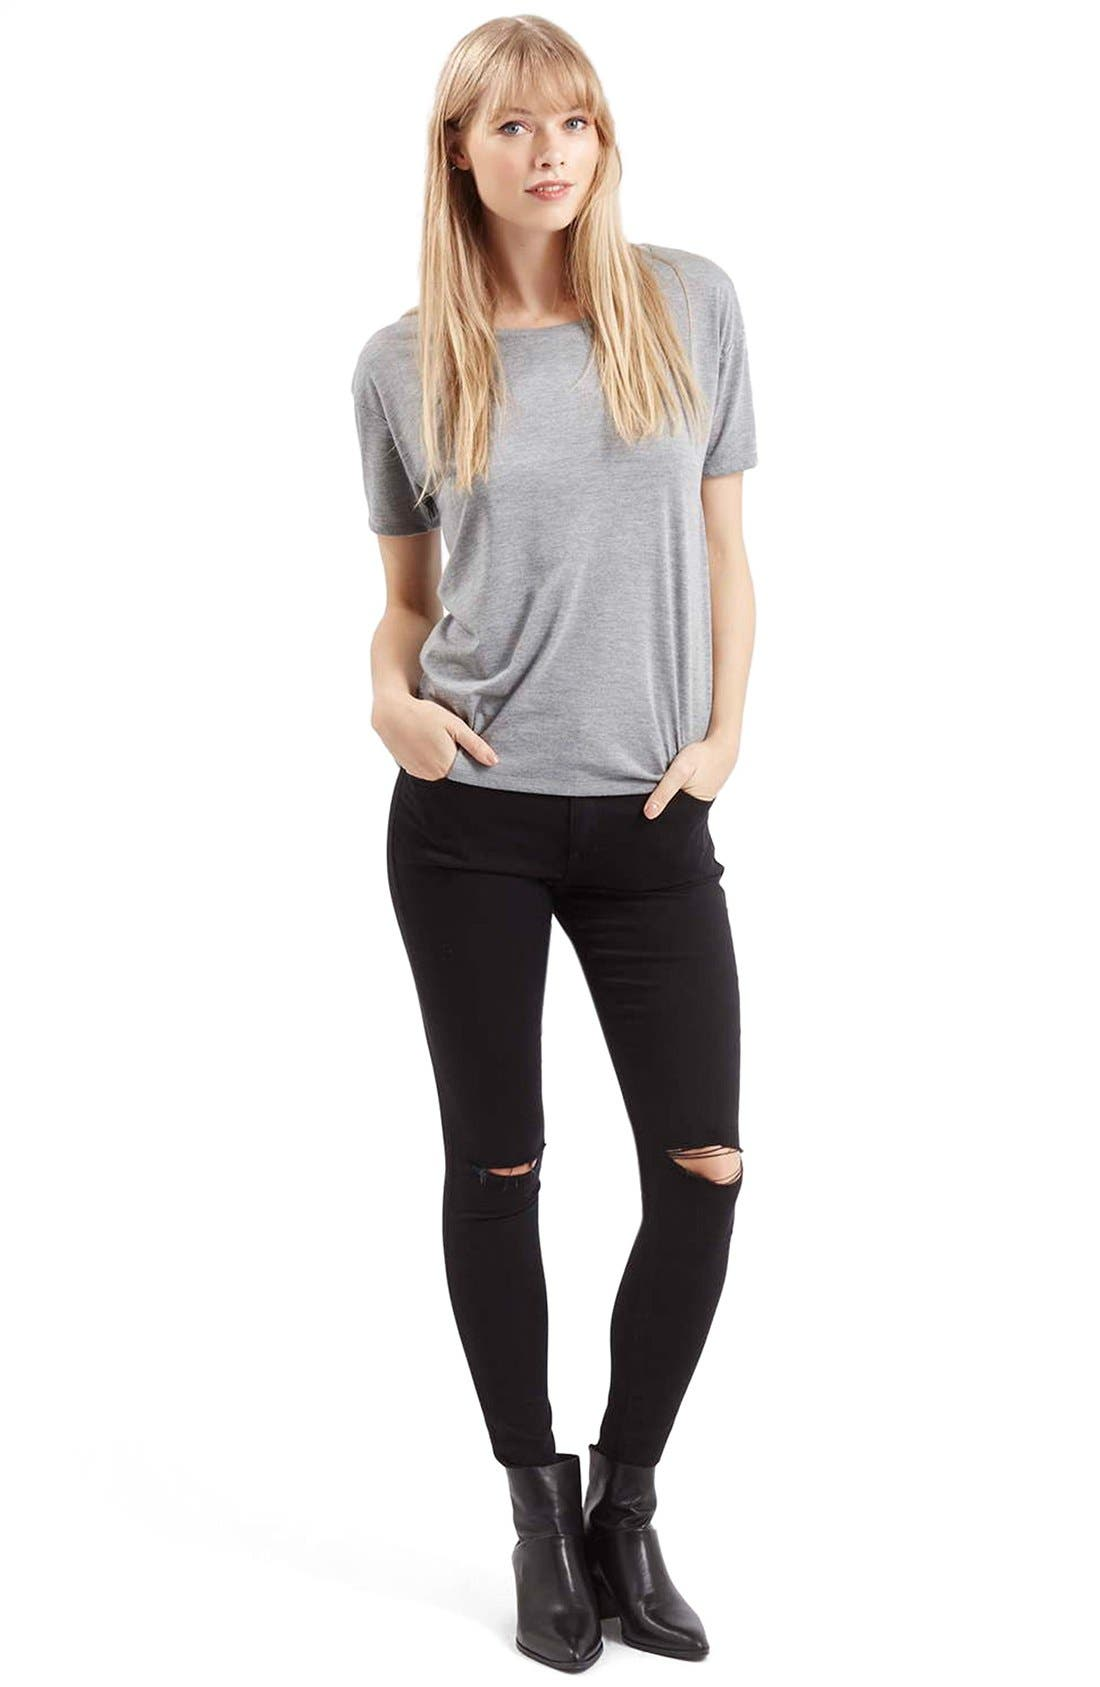 Moto 'Leigh' Ripped Skinny Jeans,                             Alternate thumbnail 2, color,                             001